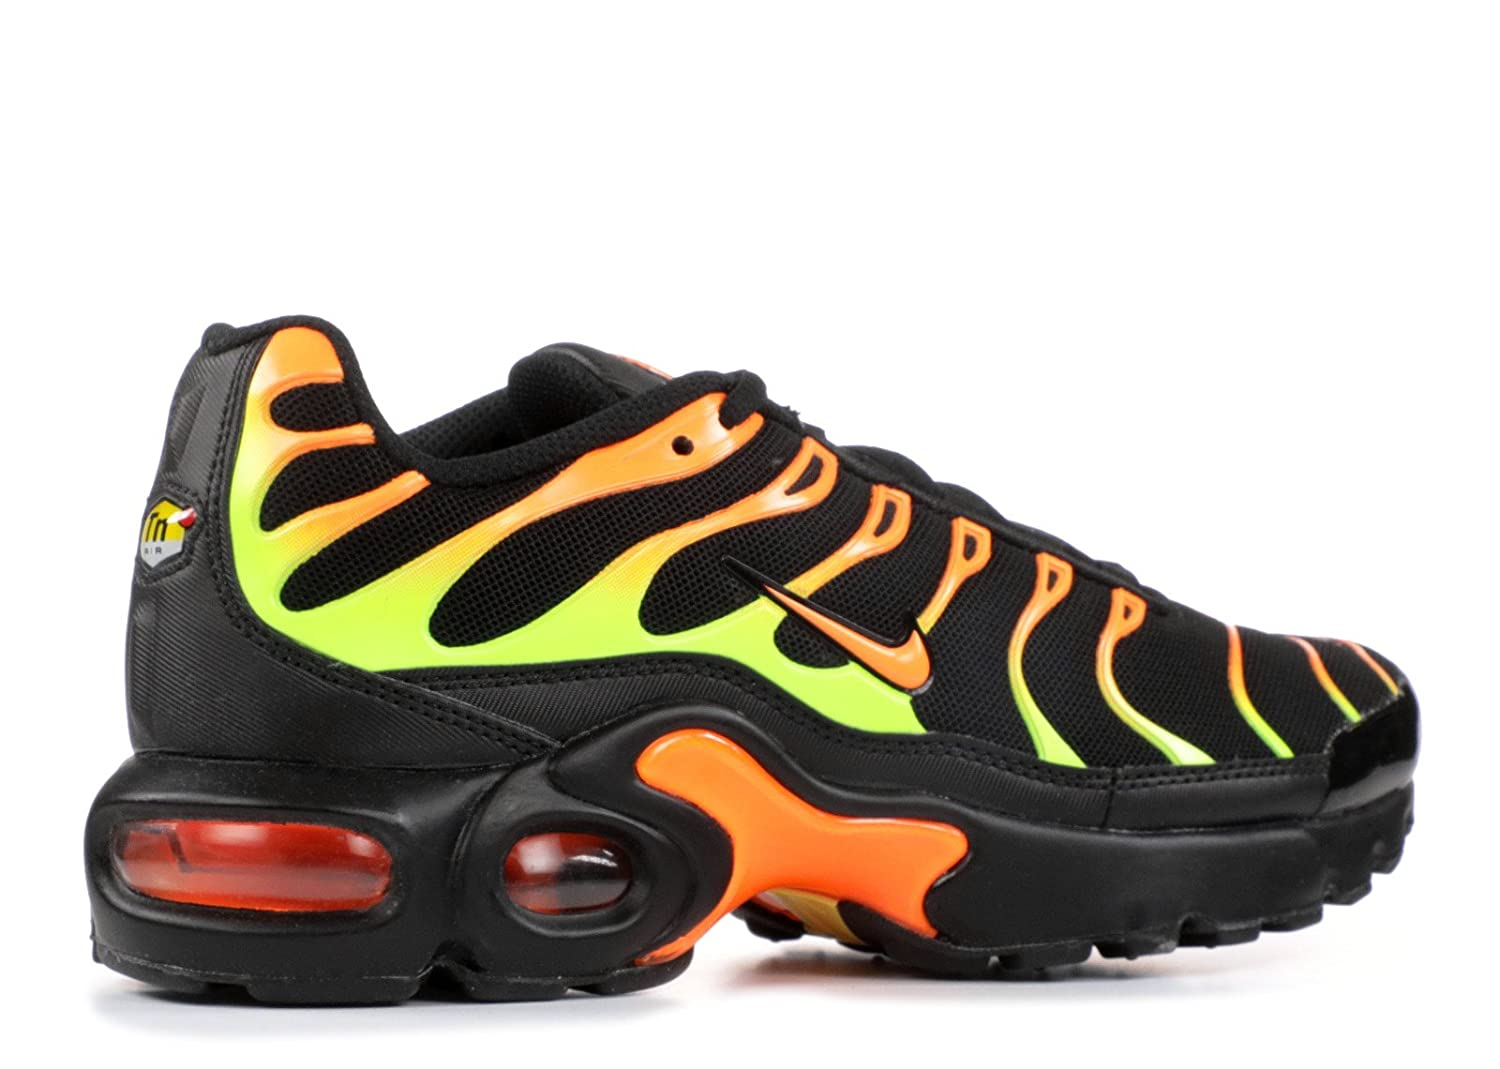 quality design 06d58 16035 Amazon.com | Nike Air Max Plus Black/Volt-Total Orange (GS ...